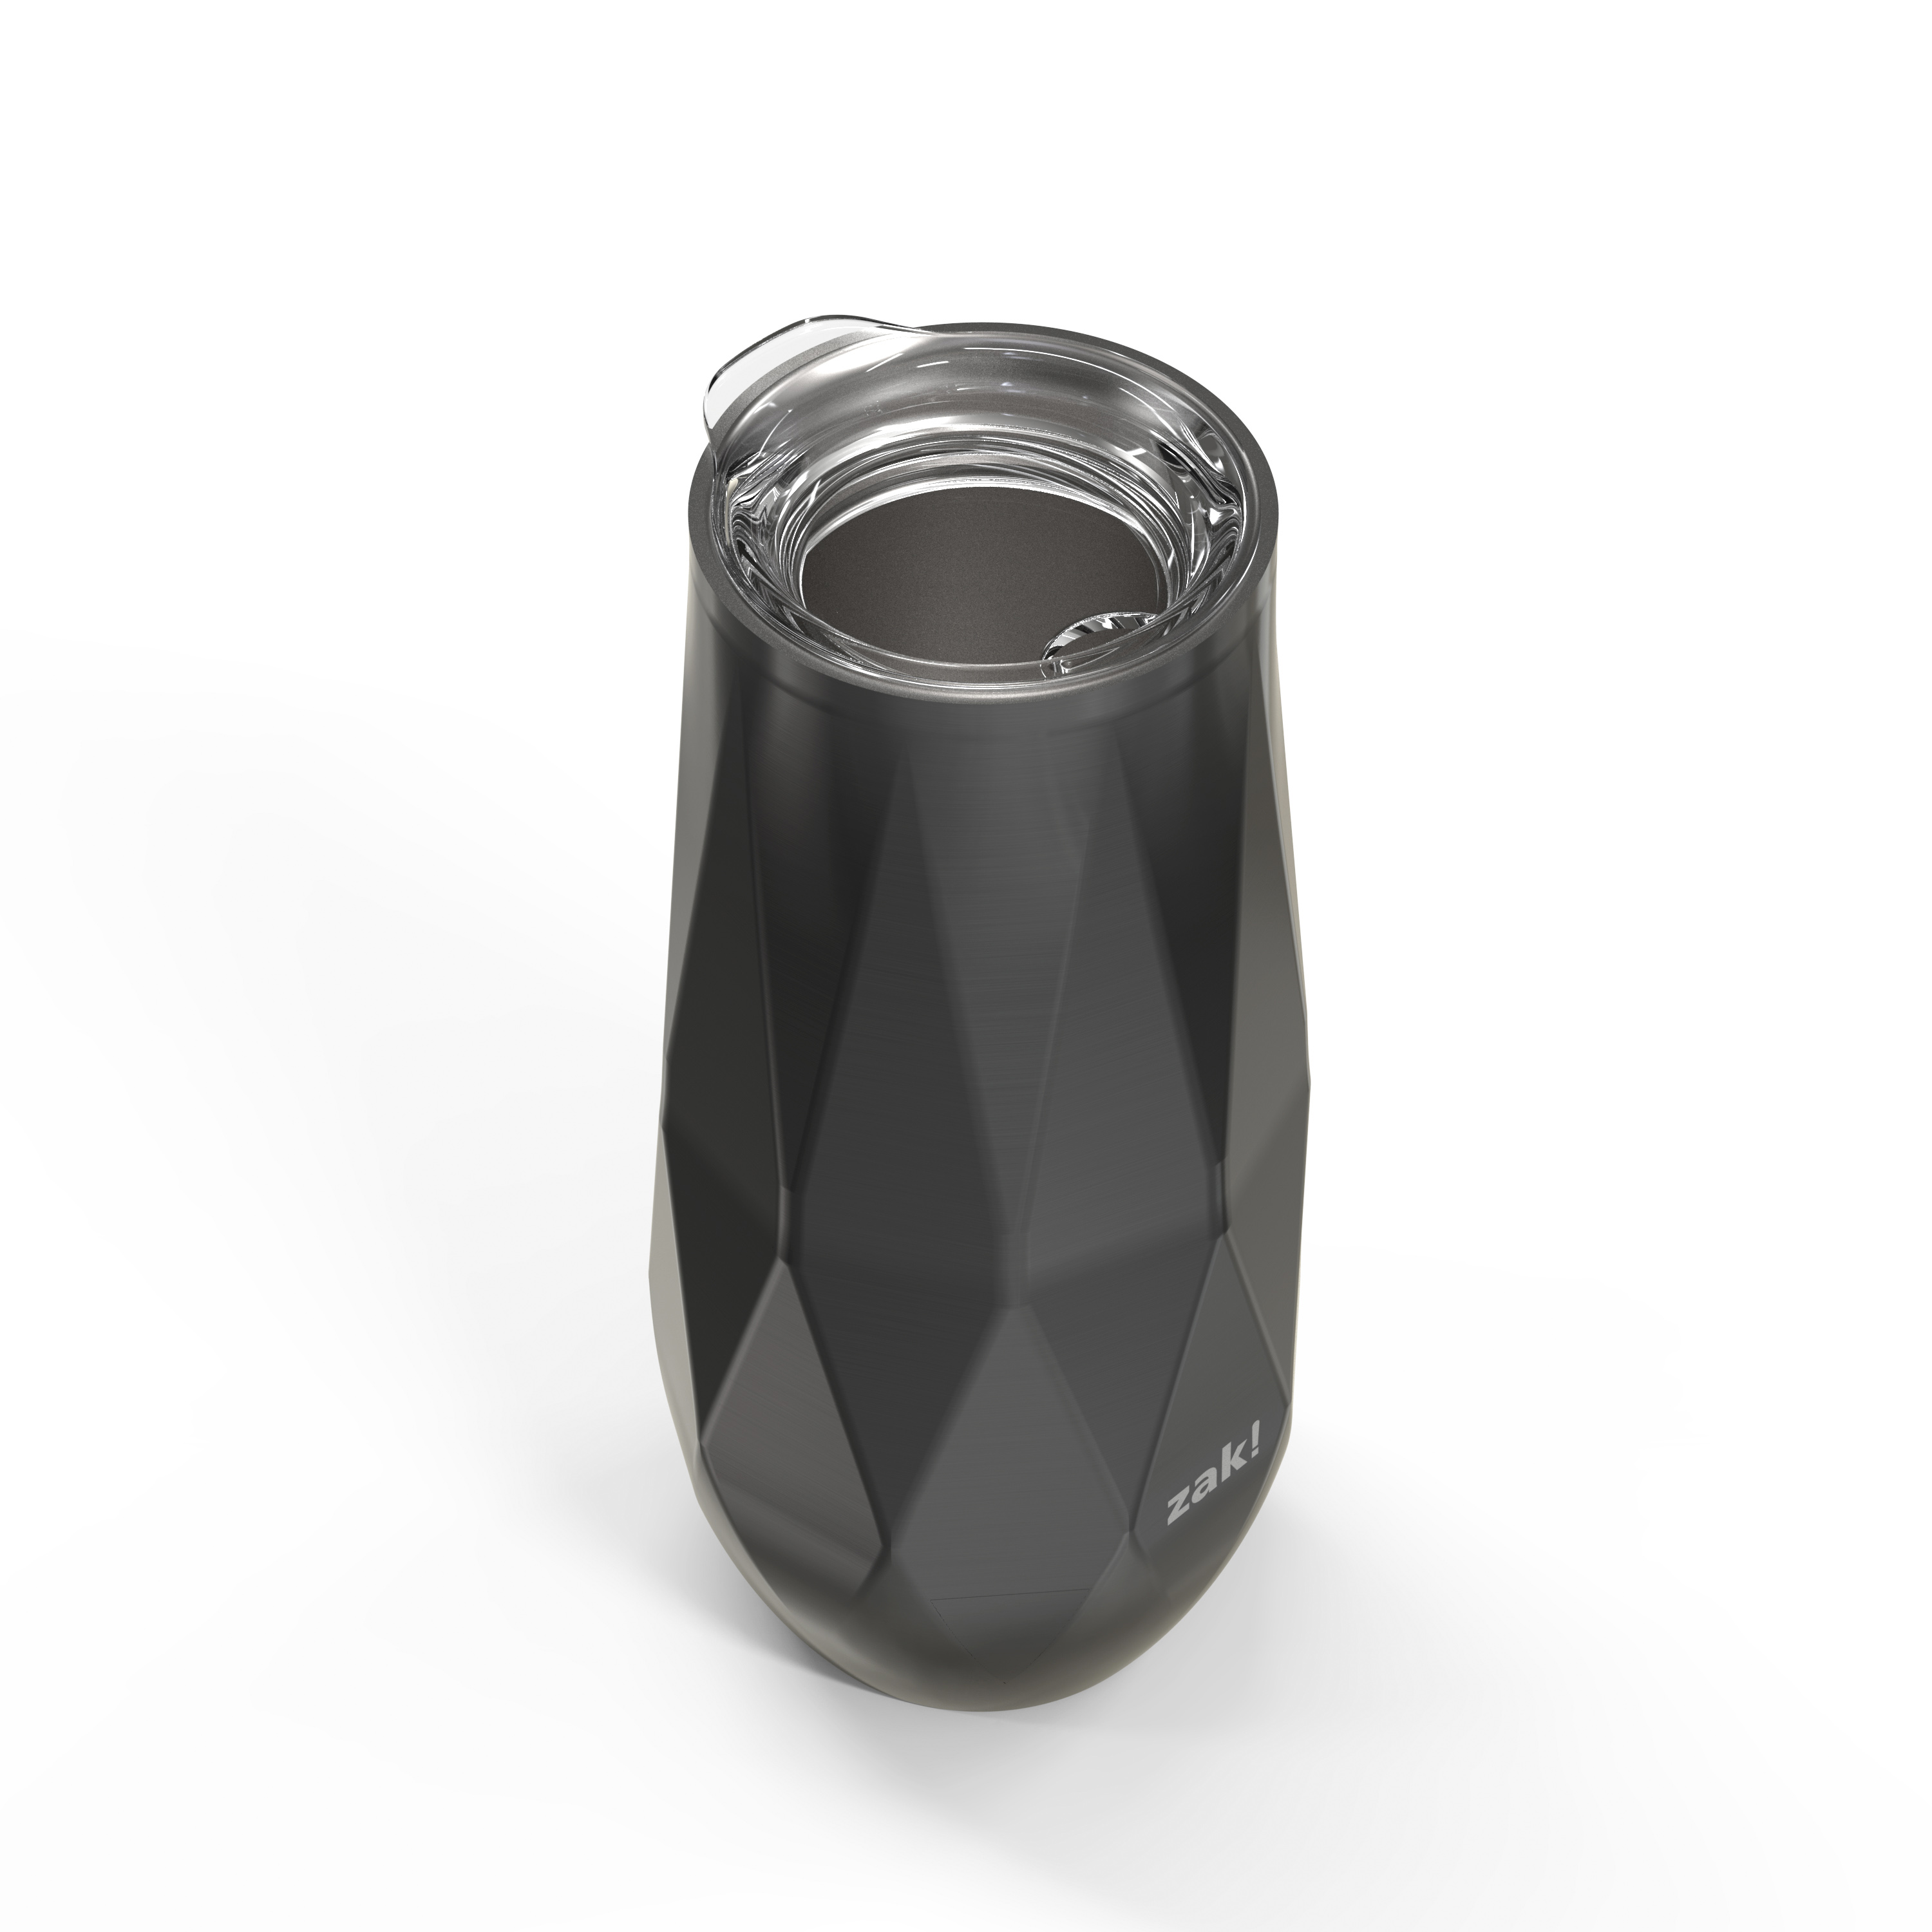 Fractal 9 ounce Vacuum Insulated Stainless Steel Tumbler, Black slideshow image 3